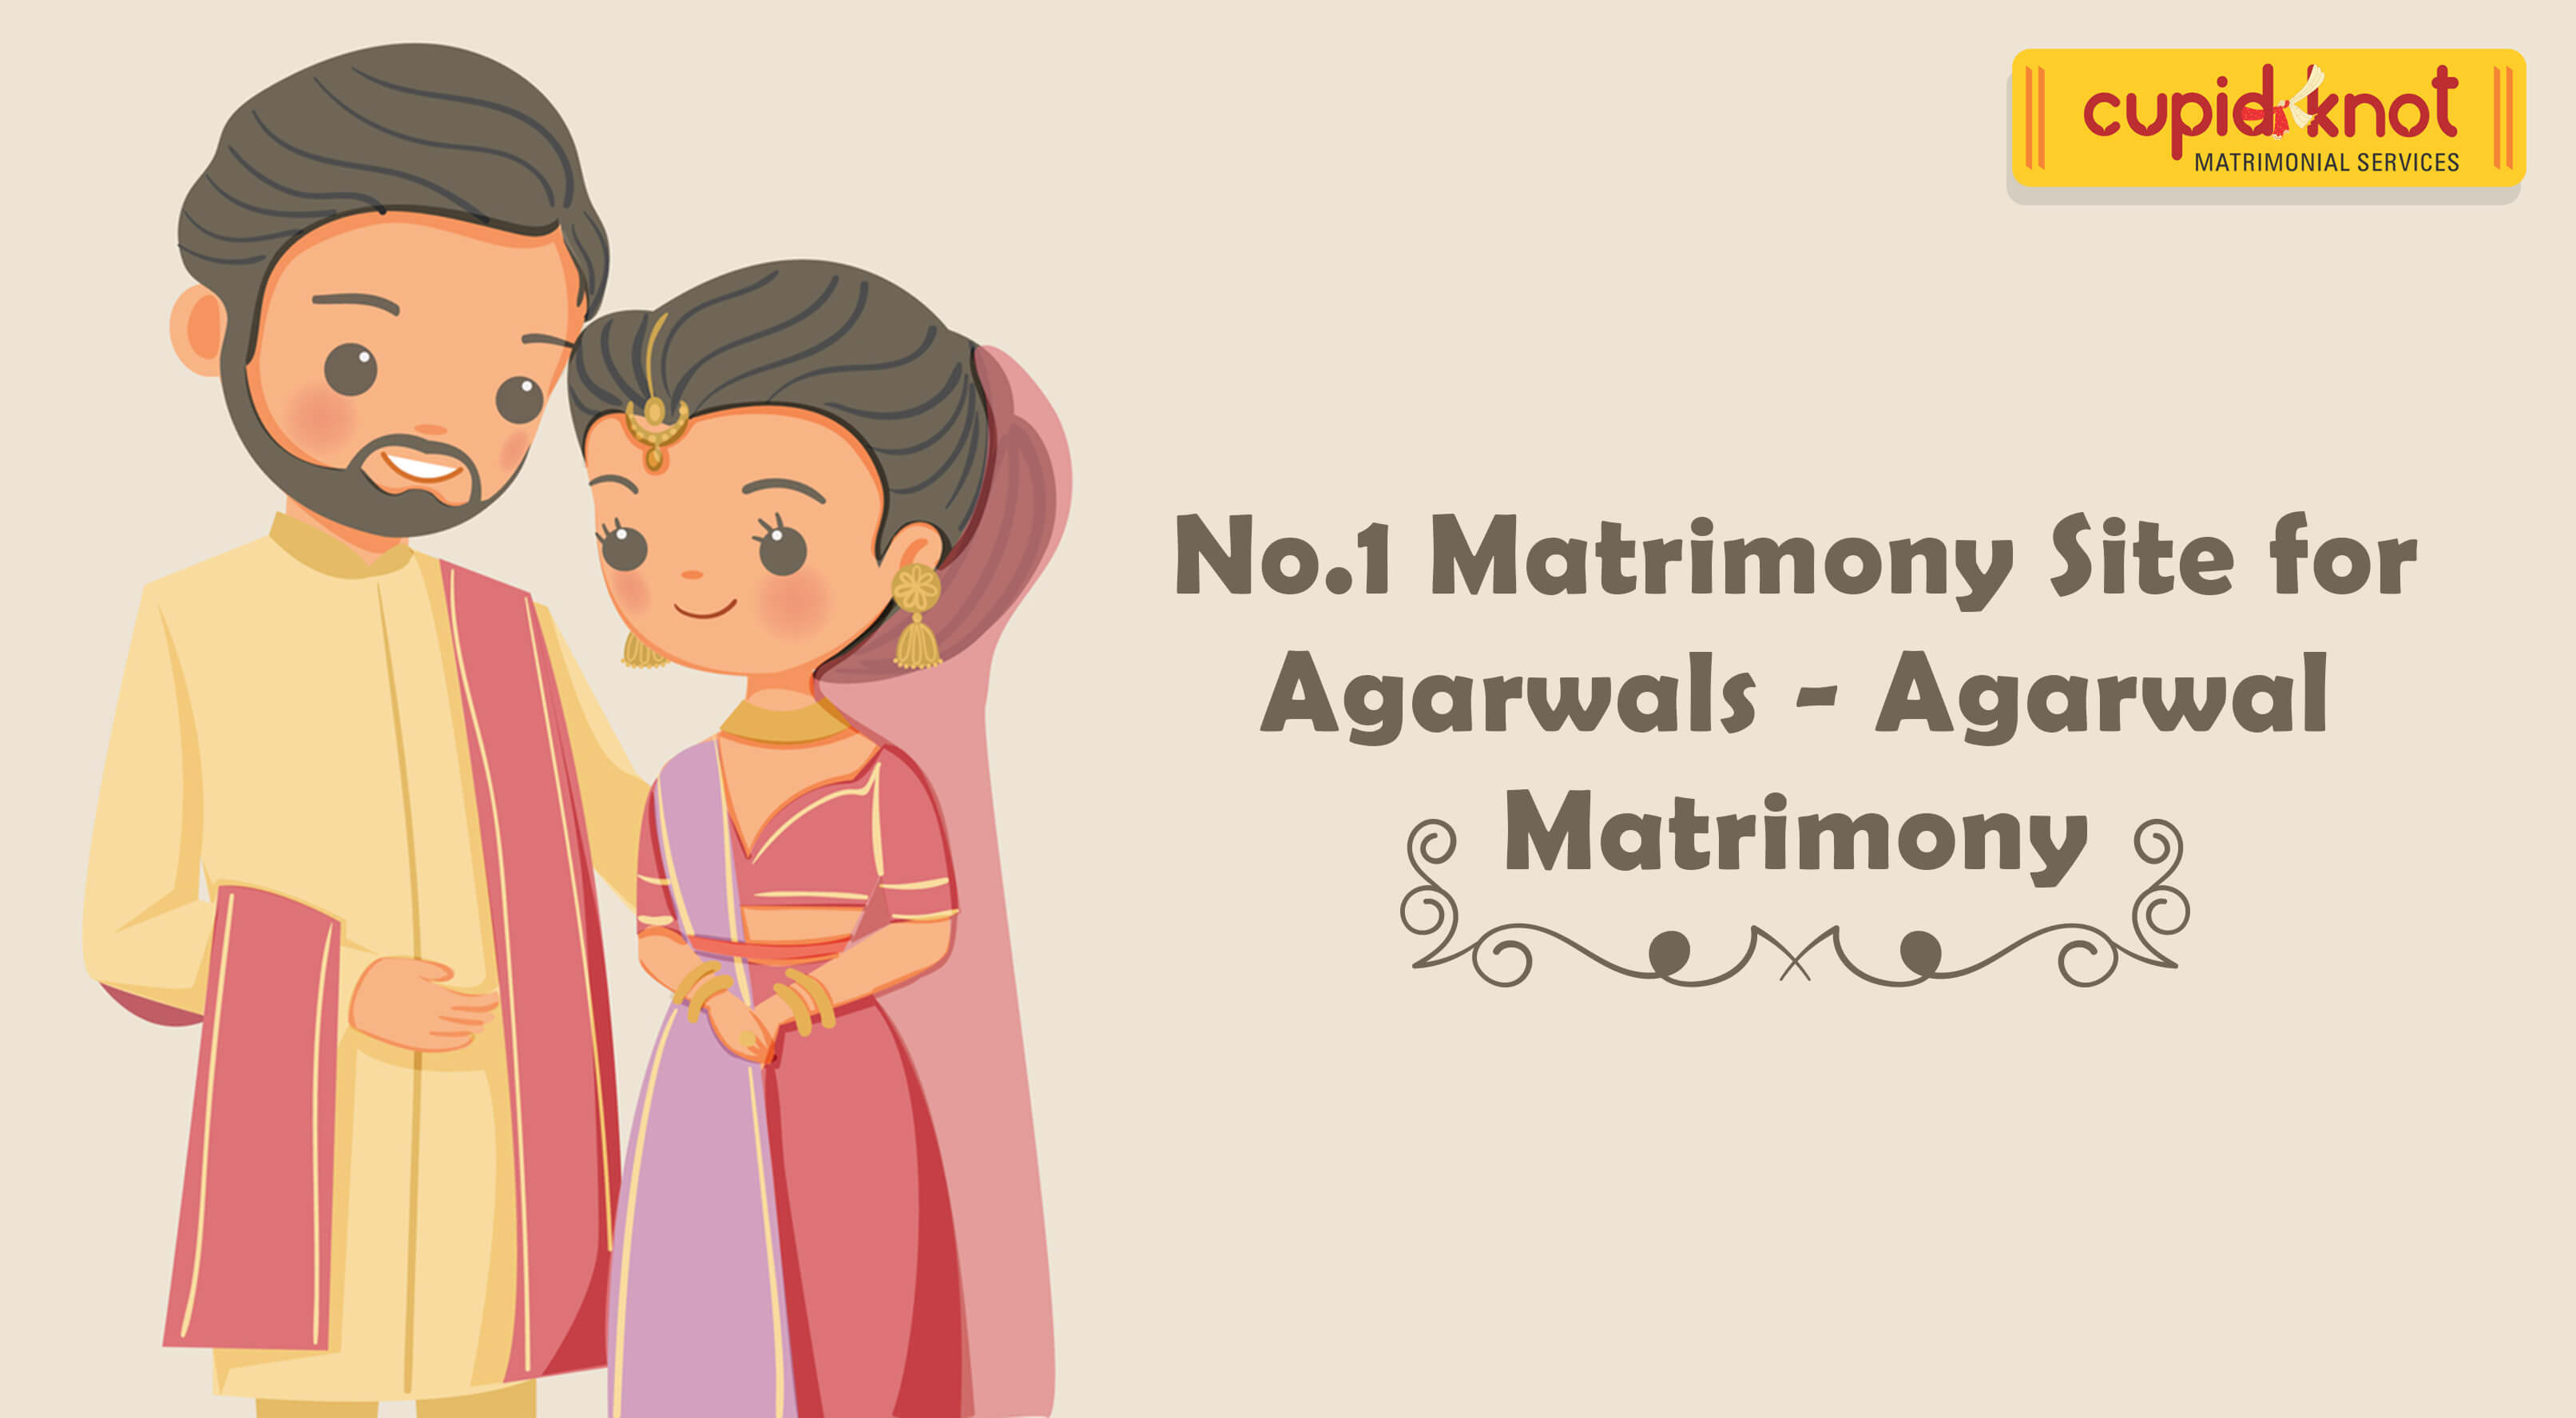 No.1 Matrimony Site for Agarwals - Agarwal Matrimony